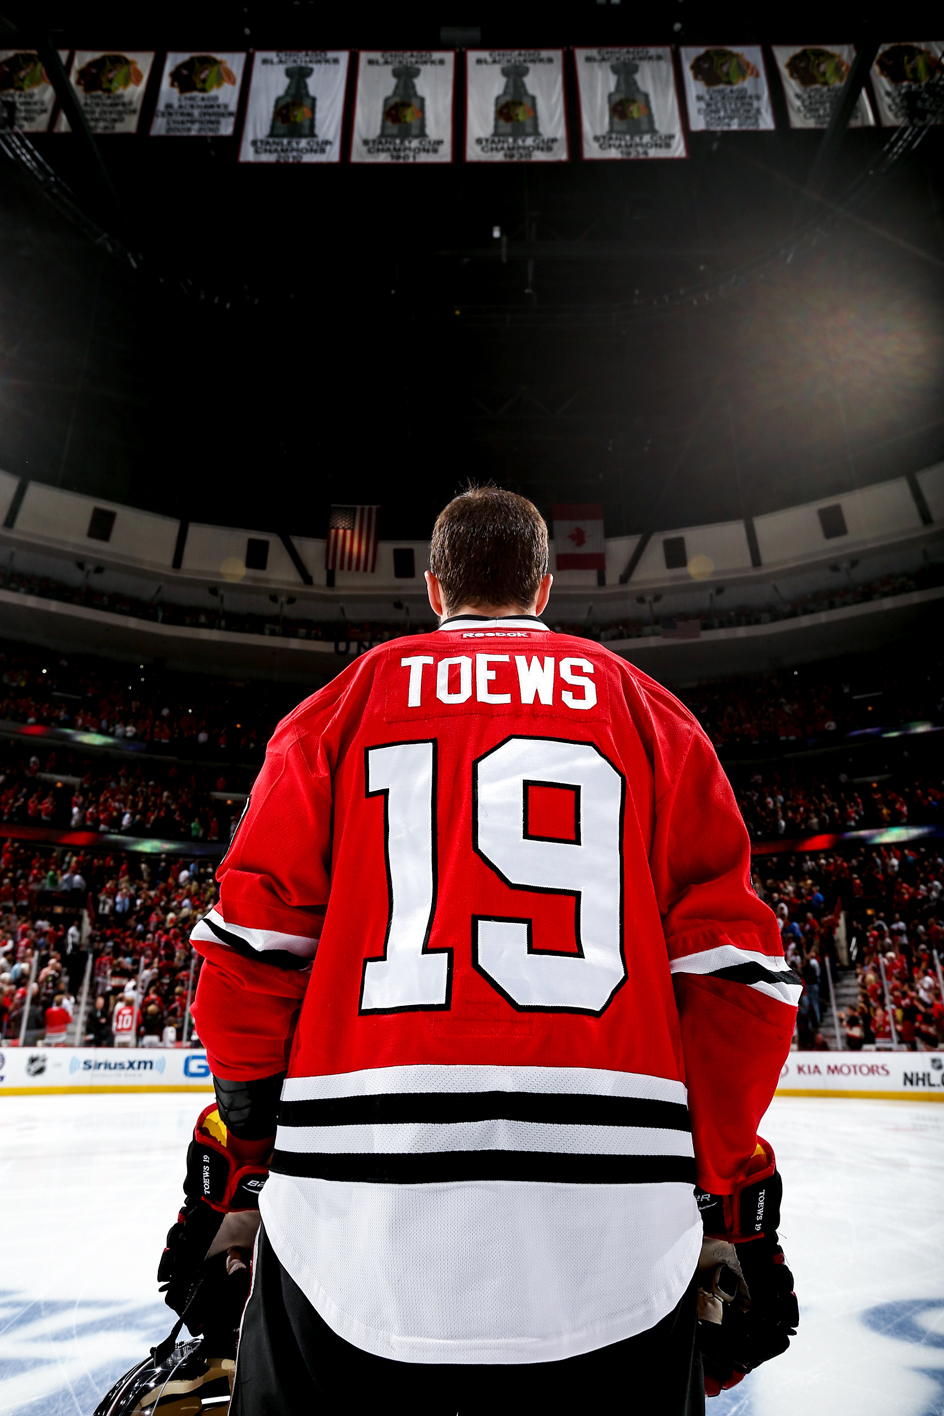 toews cup banners